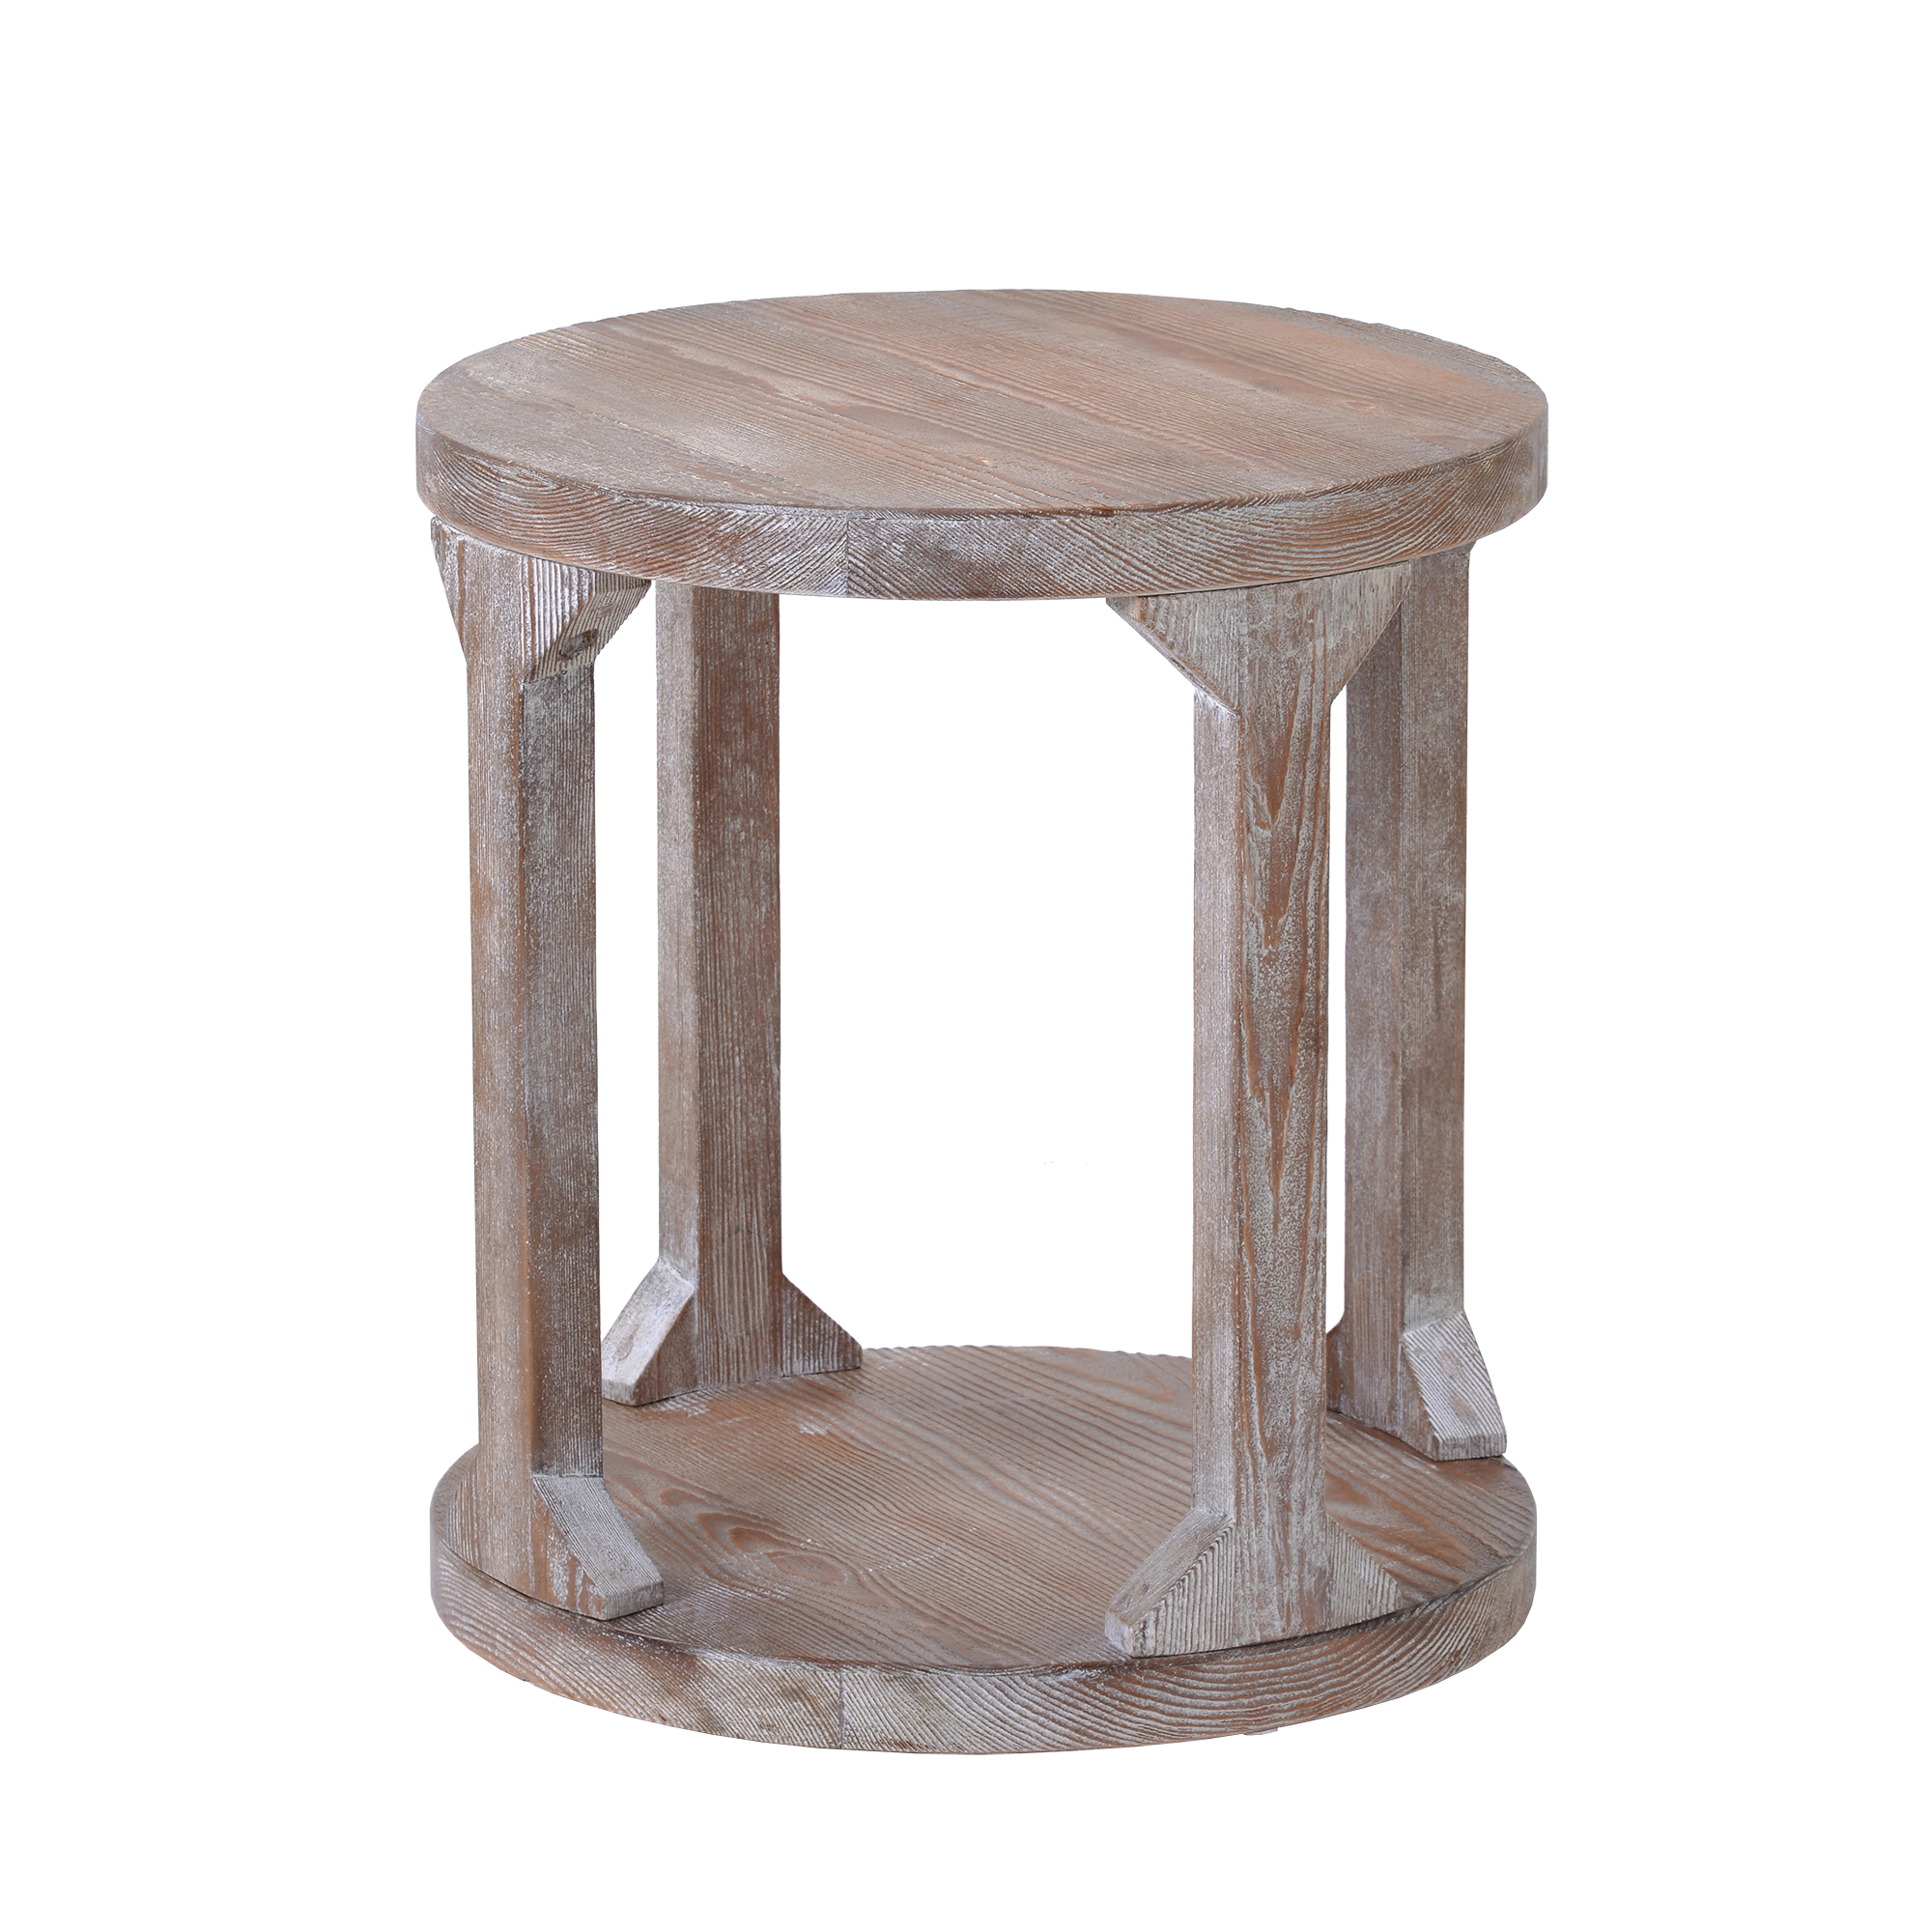 round coffee table rustic wooden coffee table end table vintage end table for living room balcony modern design home furniture with storage open